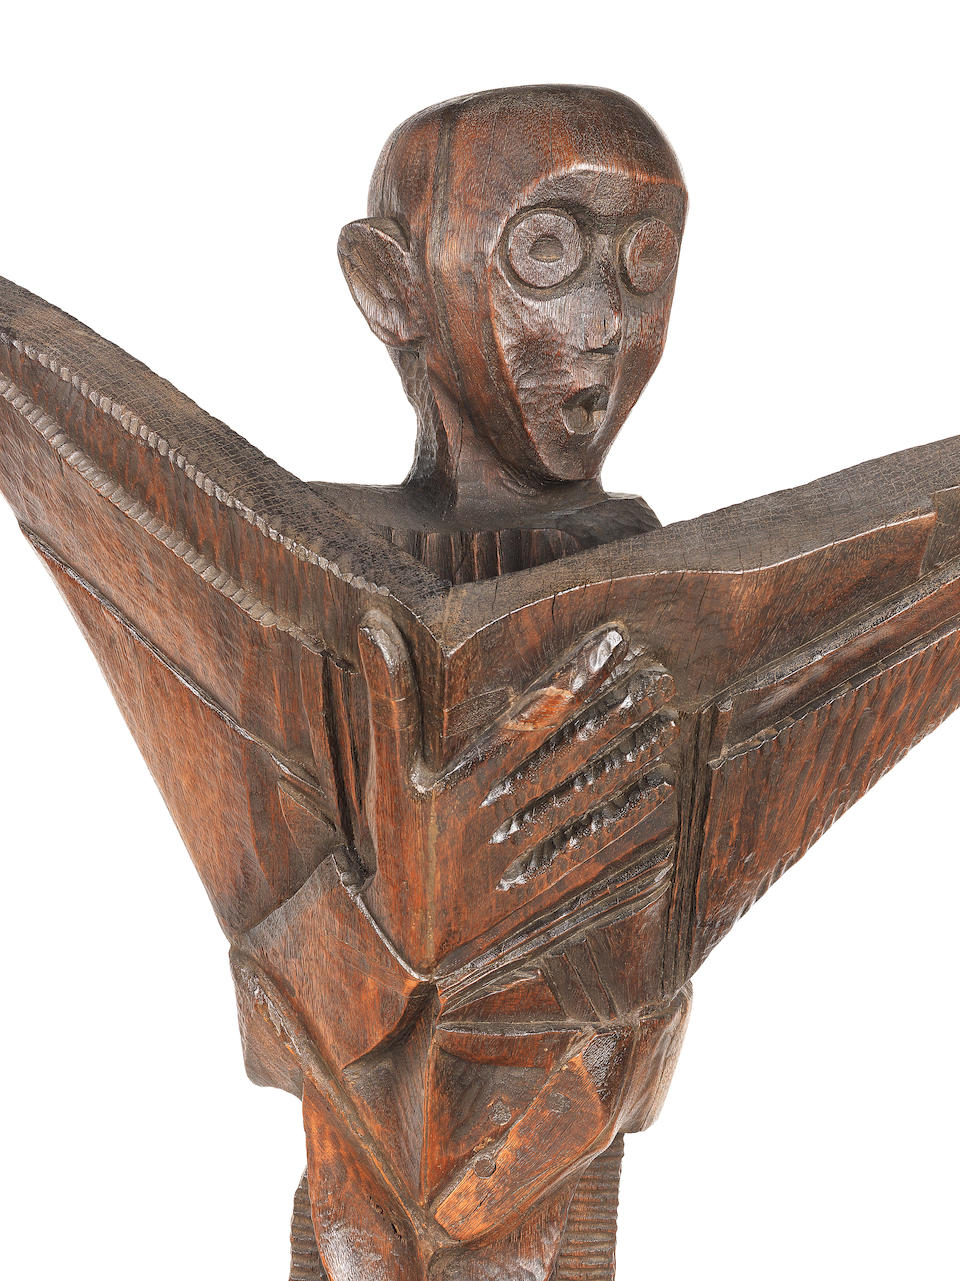 Ben (Benedict Chukwukadibia) Enwonwu, M.B.E (Nigerian, 1917-1994) Seven wooden sculptures commissioned by the Daily Mirror in 1960